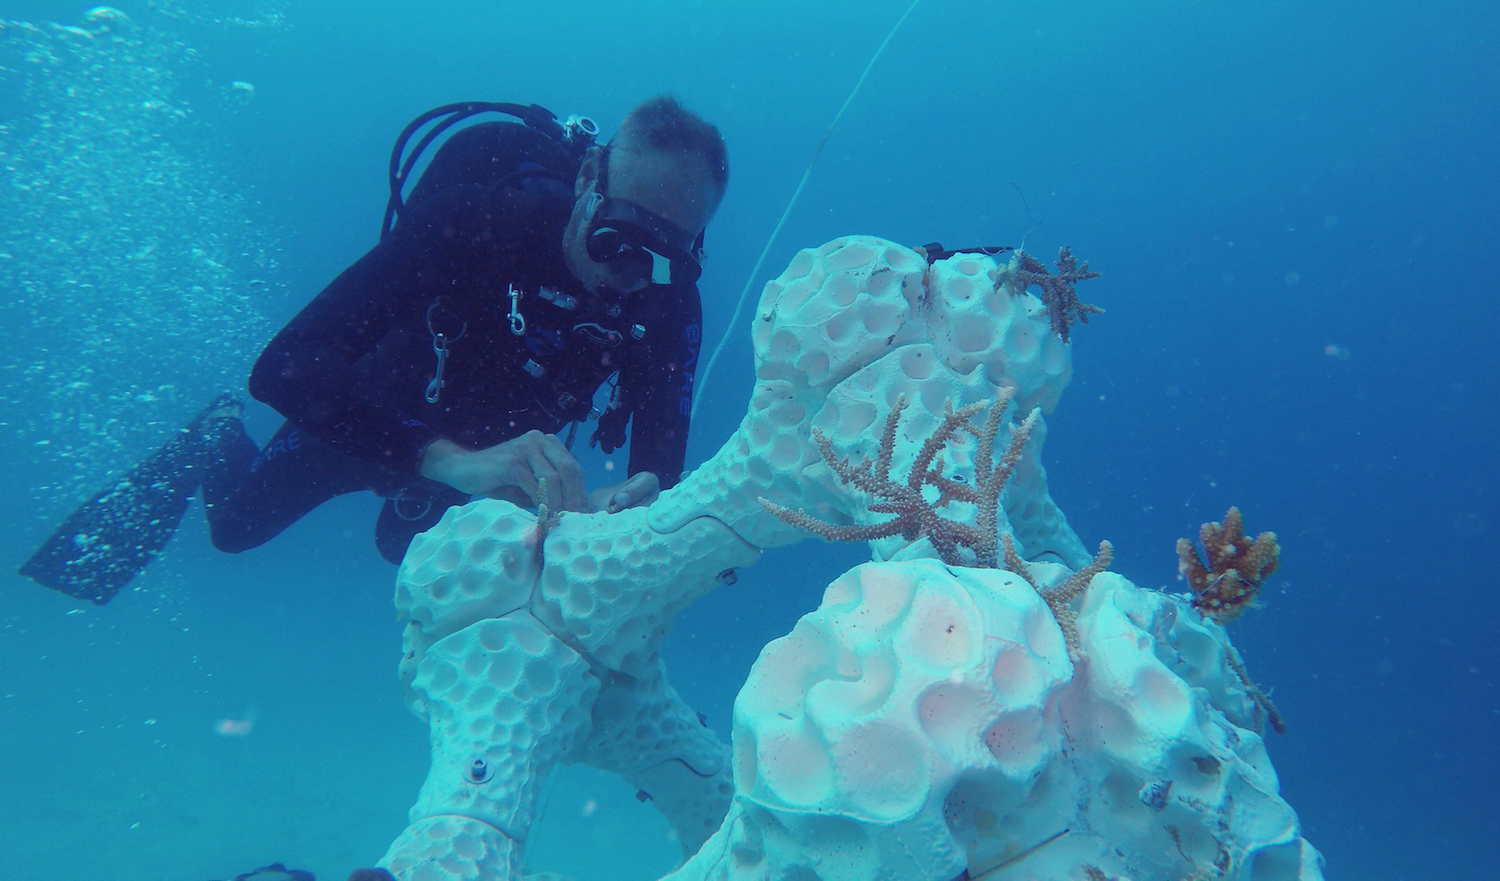 Summer Island Maldives' 3D reef makes its way to the Guinness list of world records